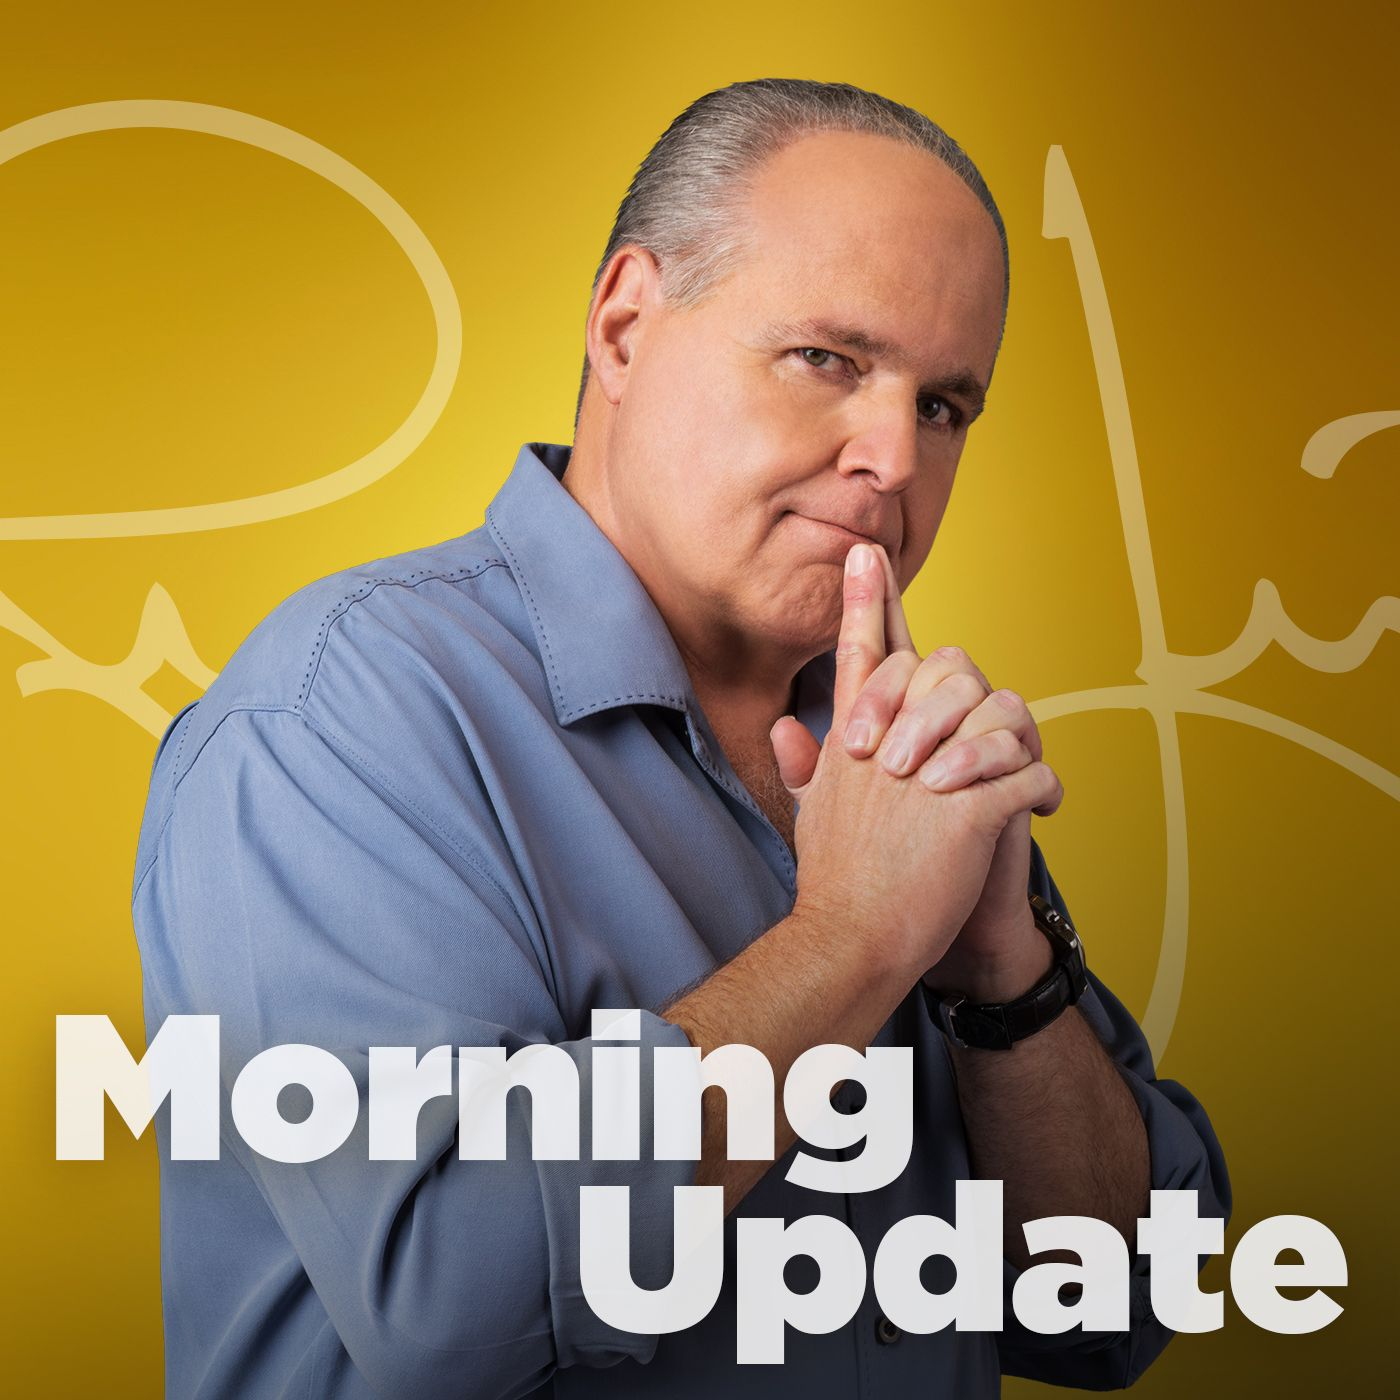 Rush Limbaugh Jun 29, 2020